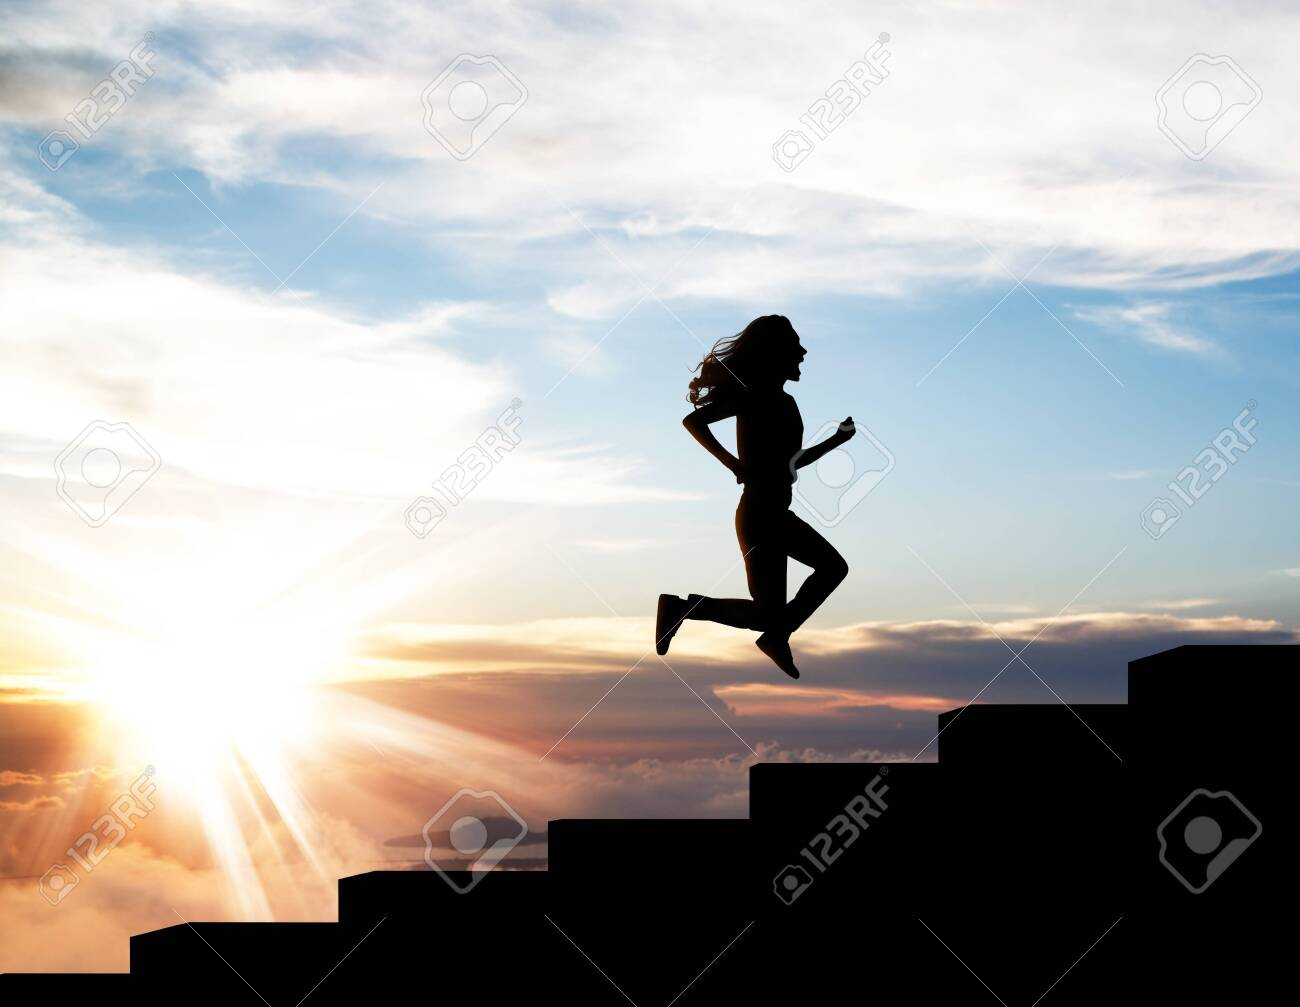 Black silhouette of woman running up on the staircase in sunset. - 140196127